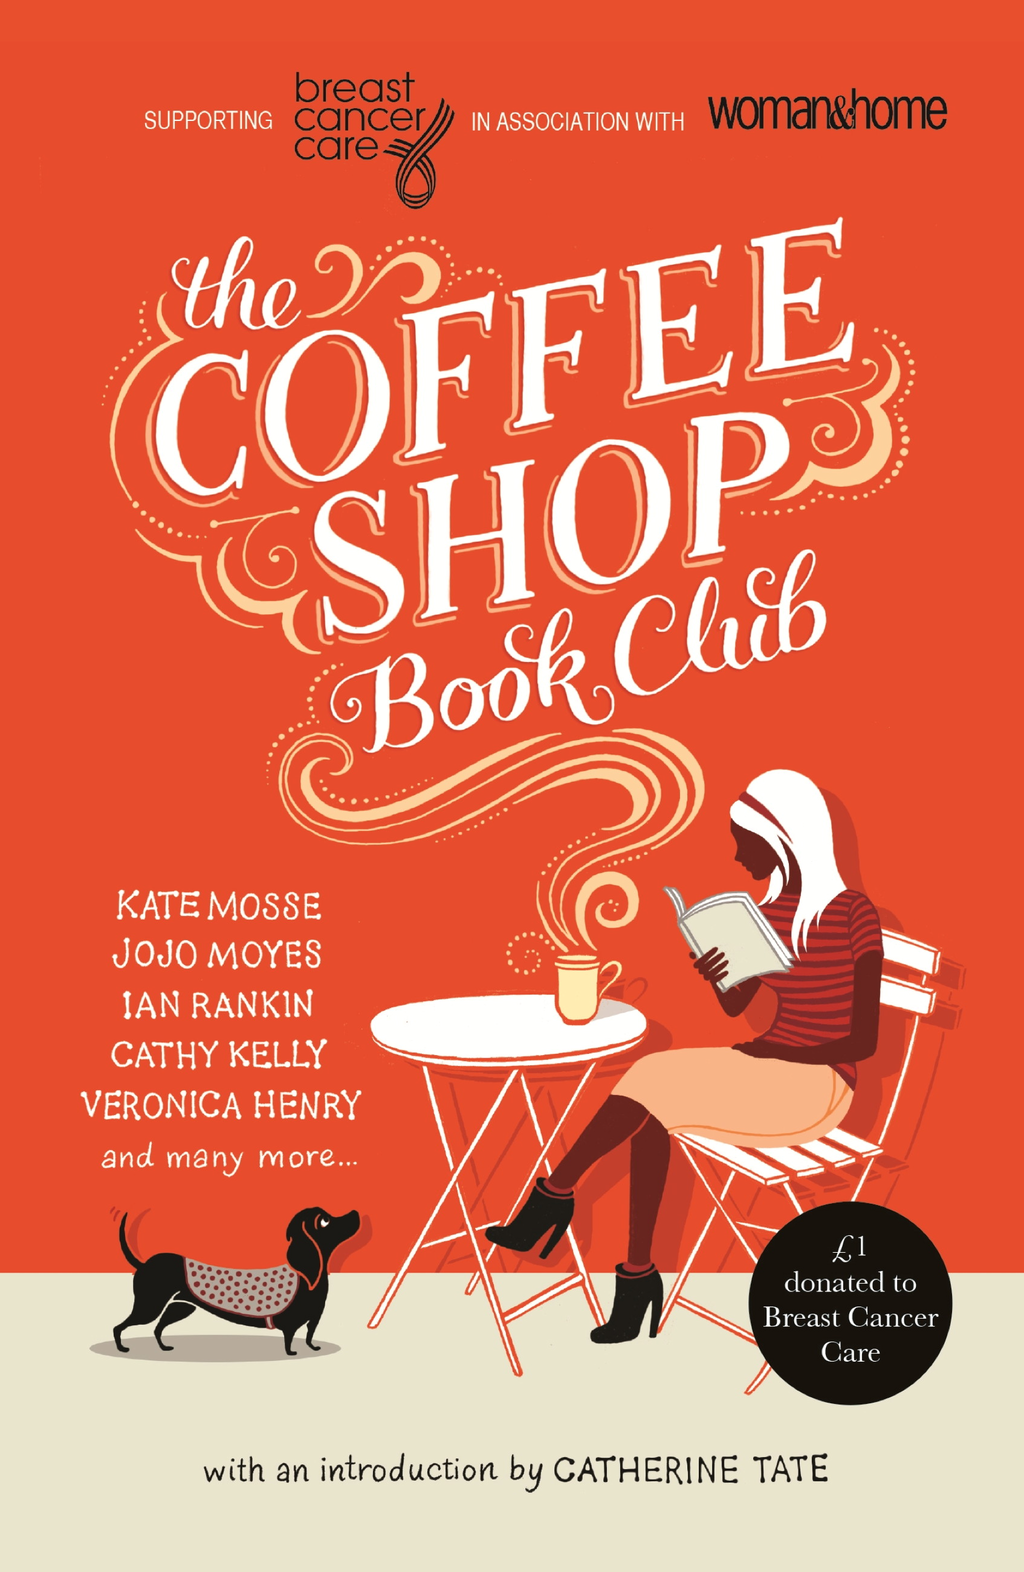 The Coffee Shop Book Club